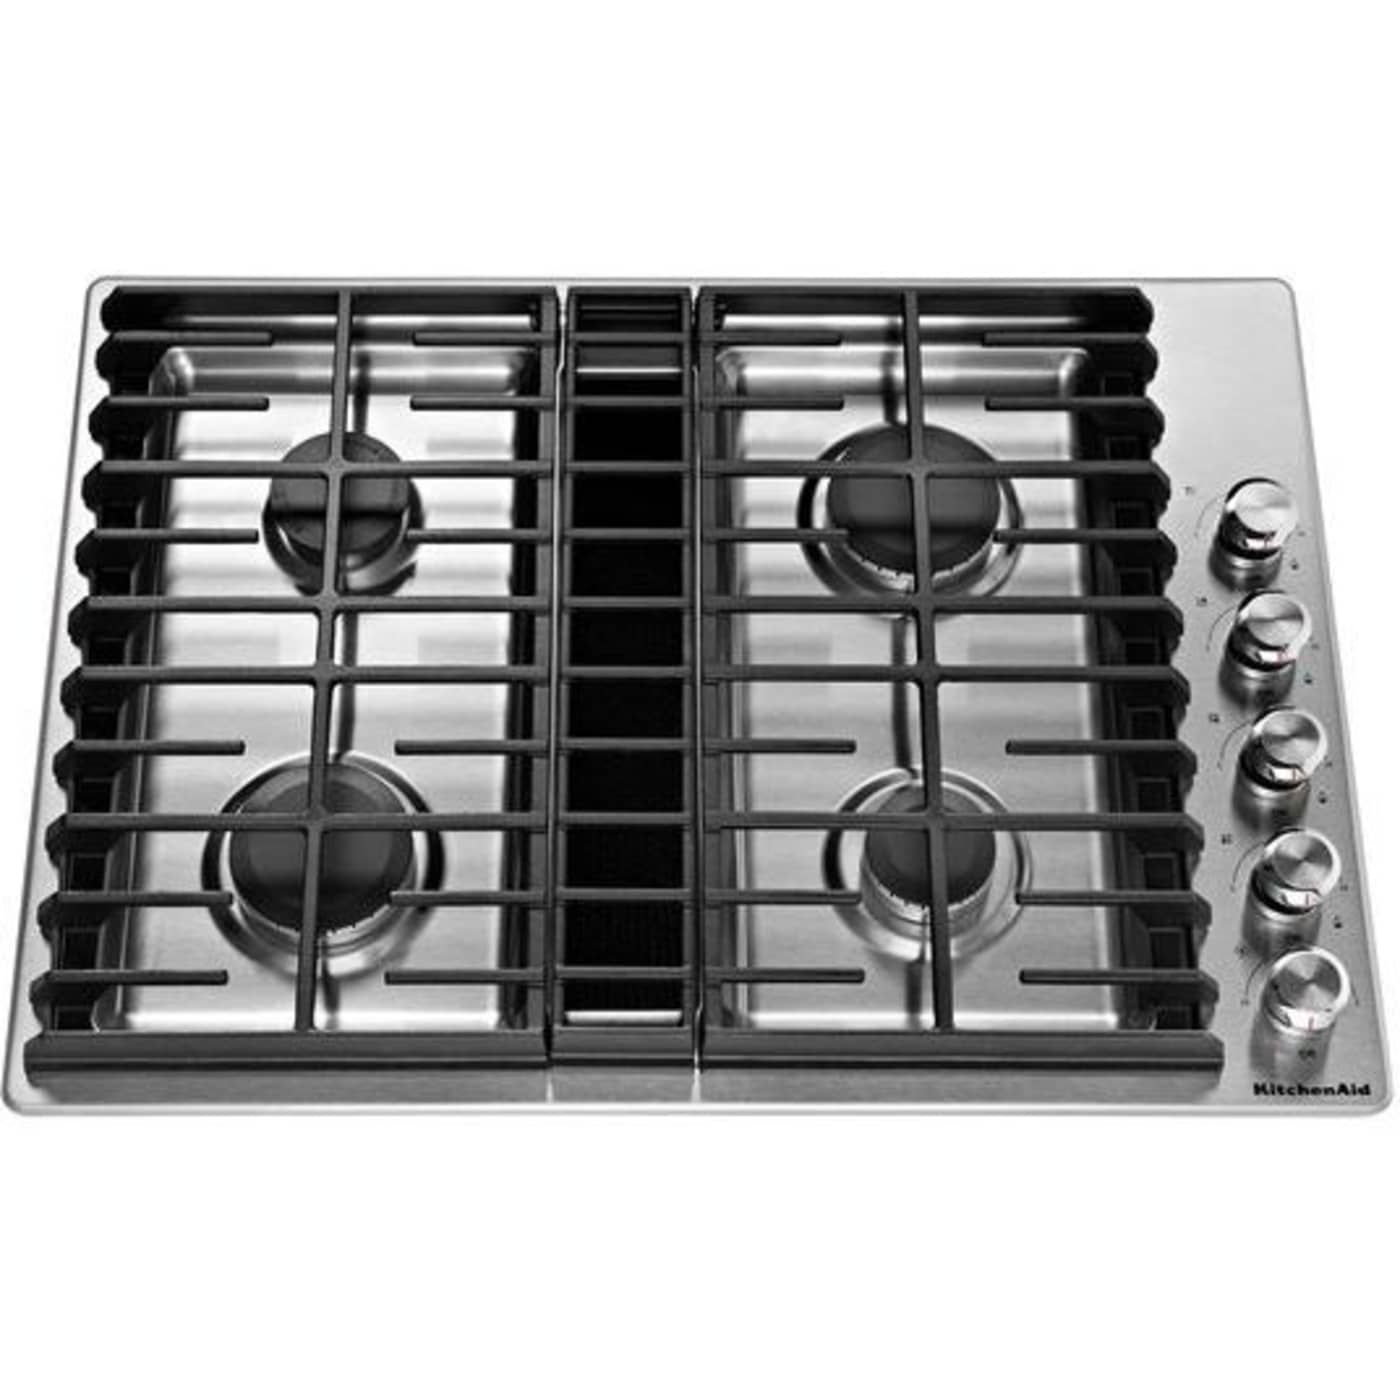 Kitchenaid Kcgd500gss Downdraft Cooktop Gas Cooktop Kitchen Aid